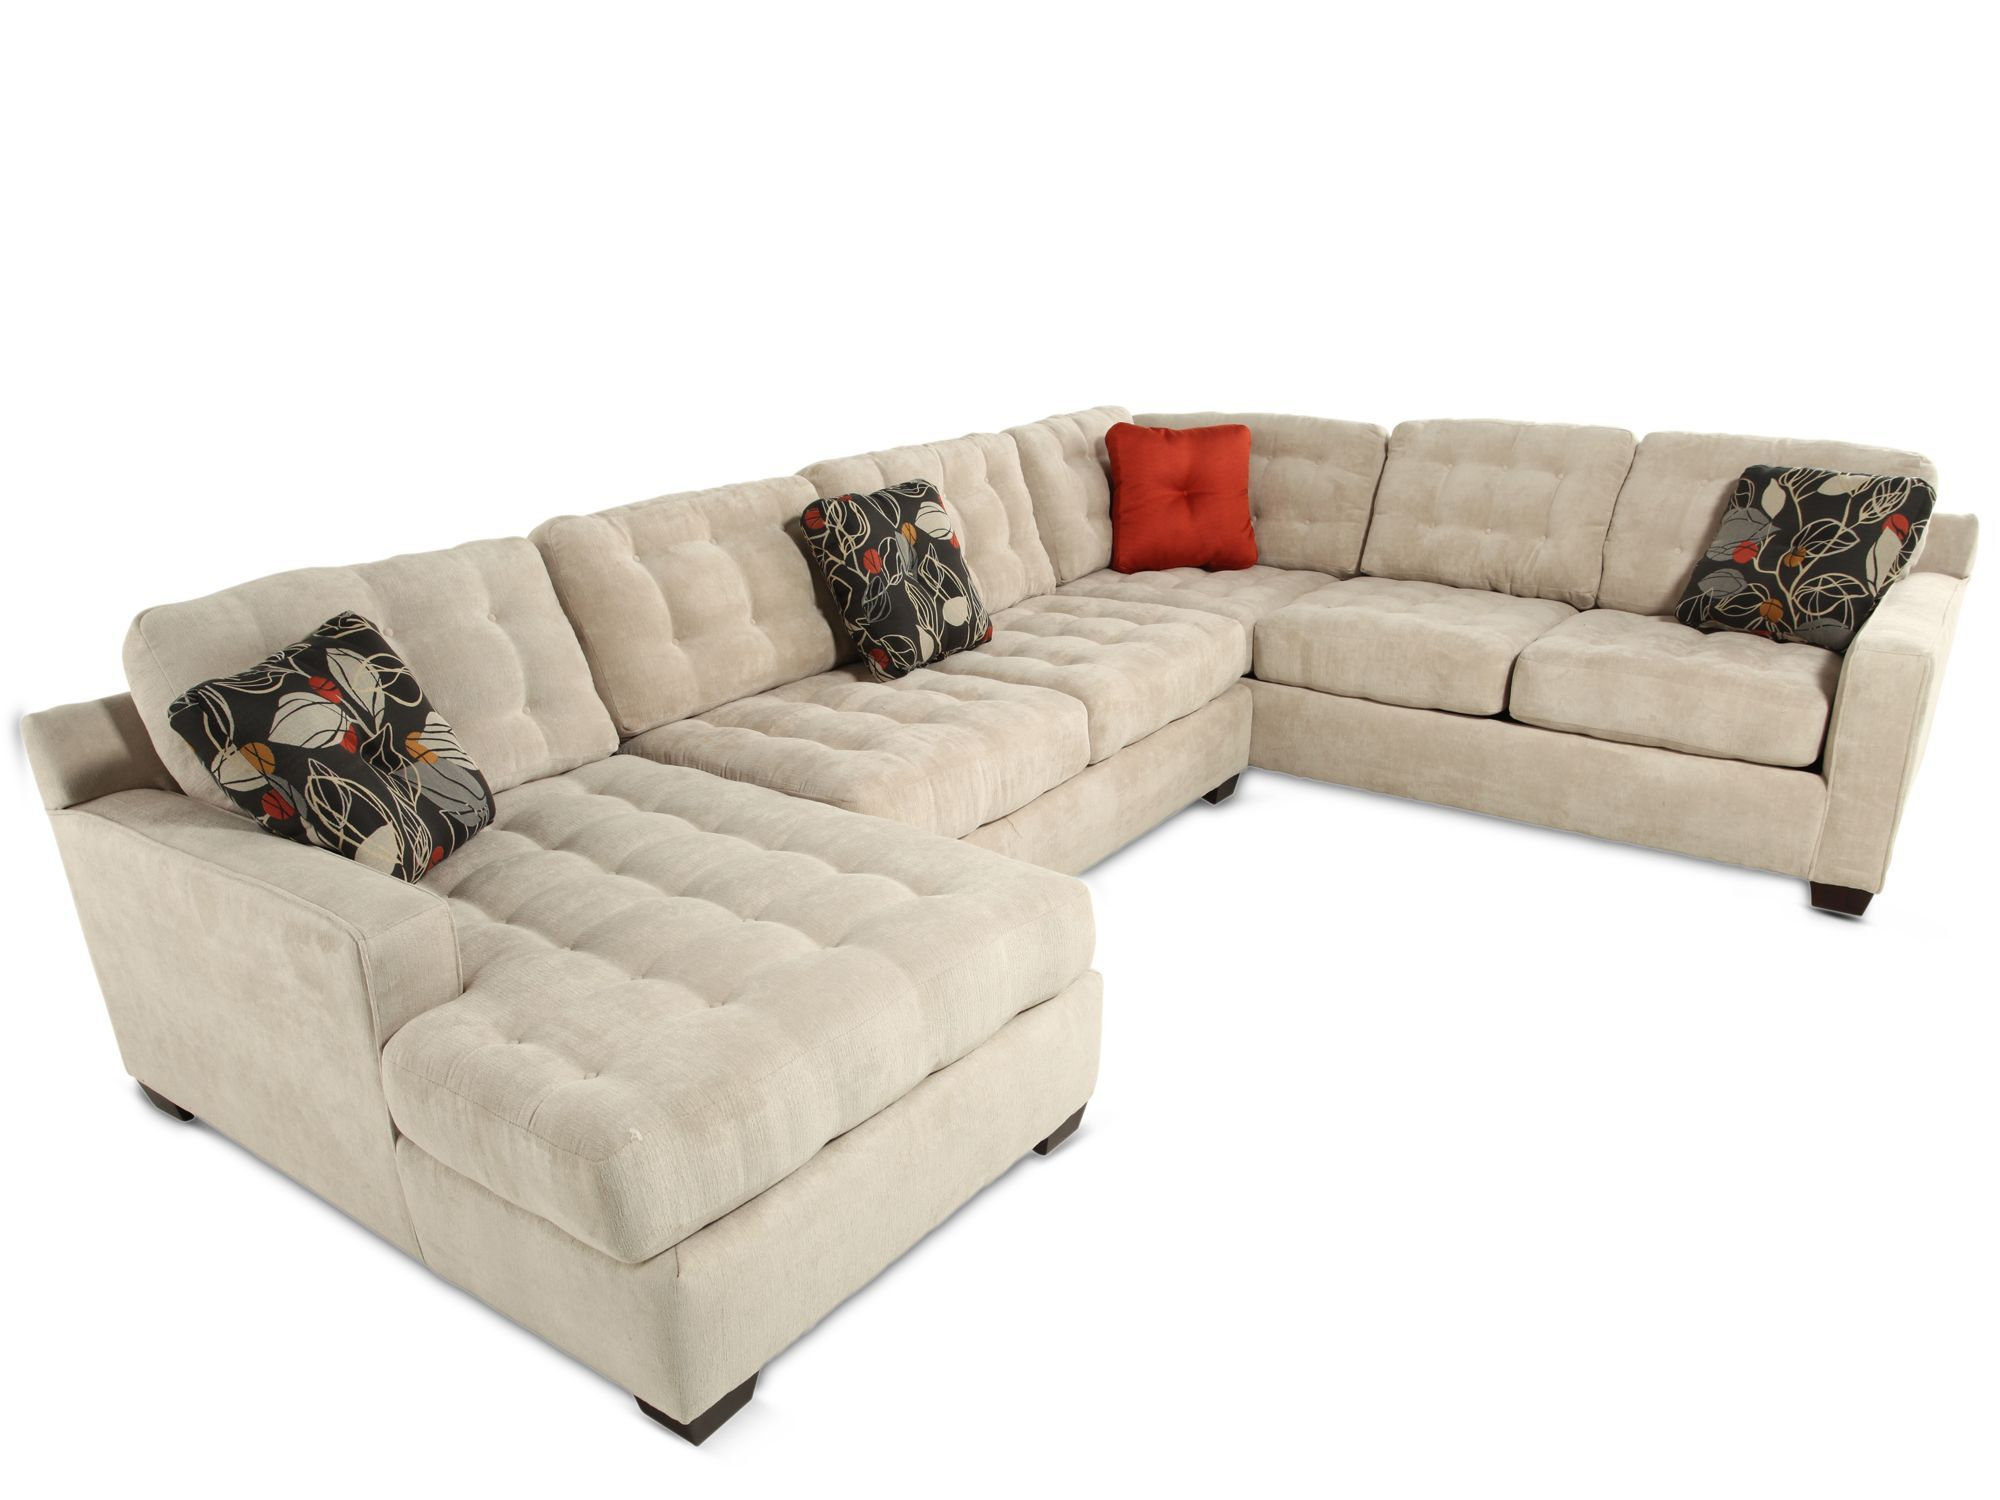 Broyhill Tribeca Sectional when I ditch the recliners and a